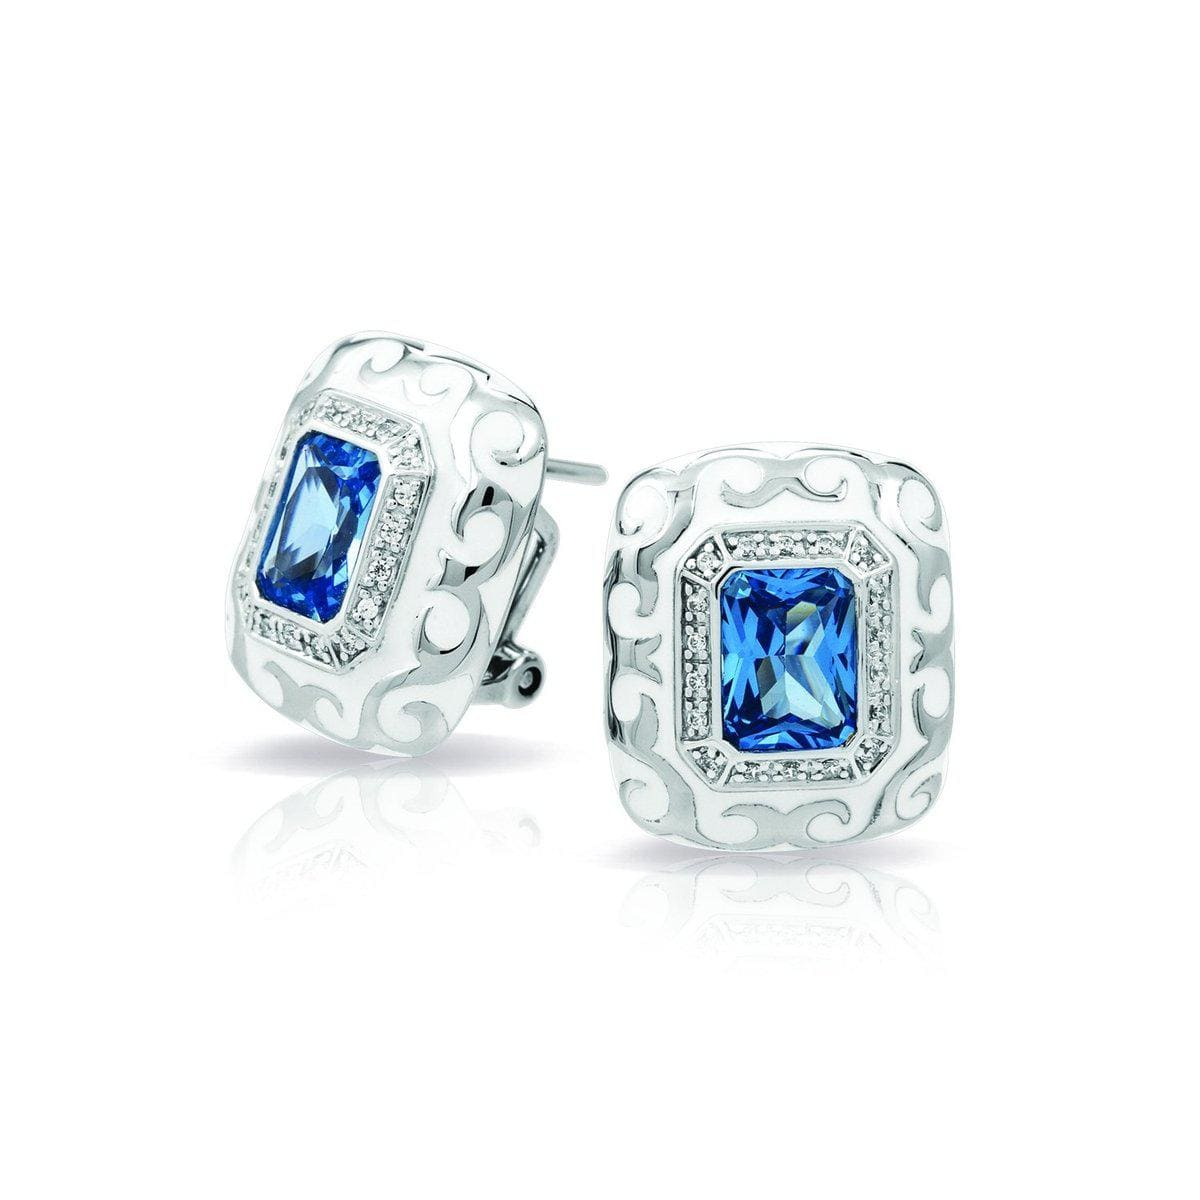 Royale Stone White and Aquamarine Earrings-Belle Etoile-Renee Taylor Gallery